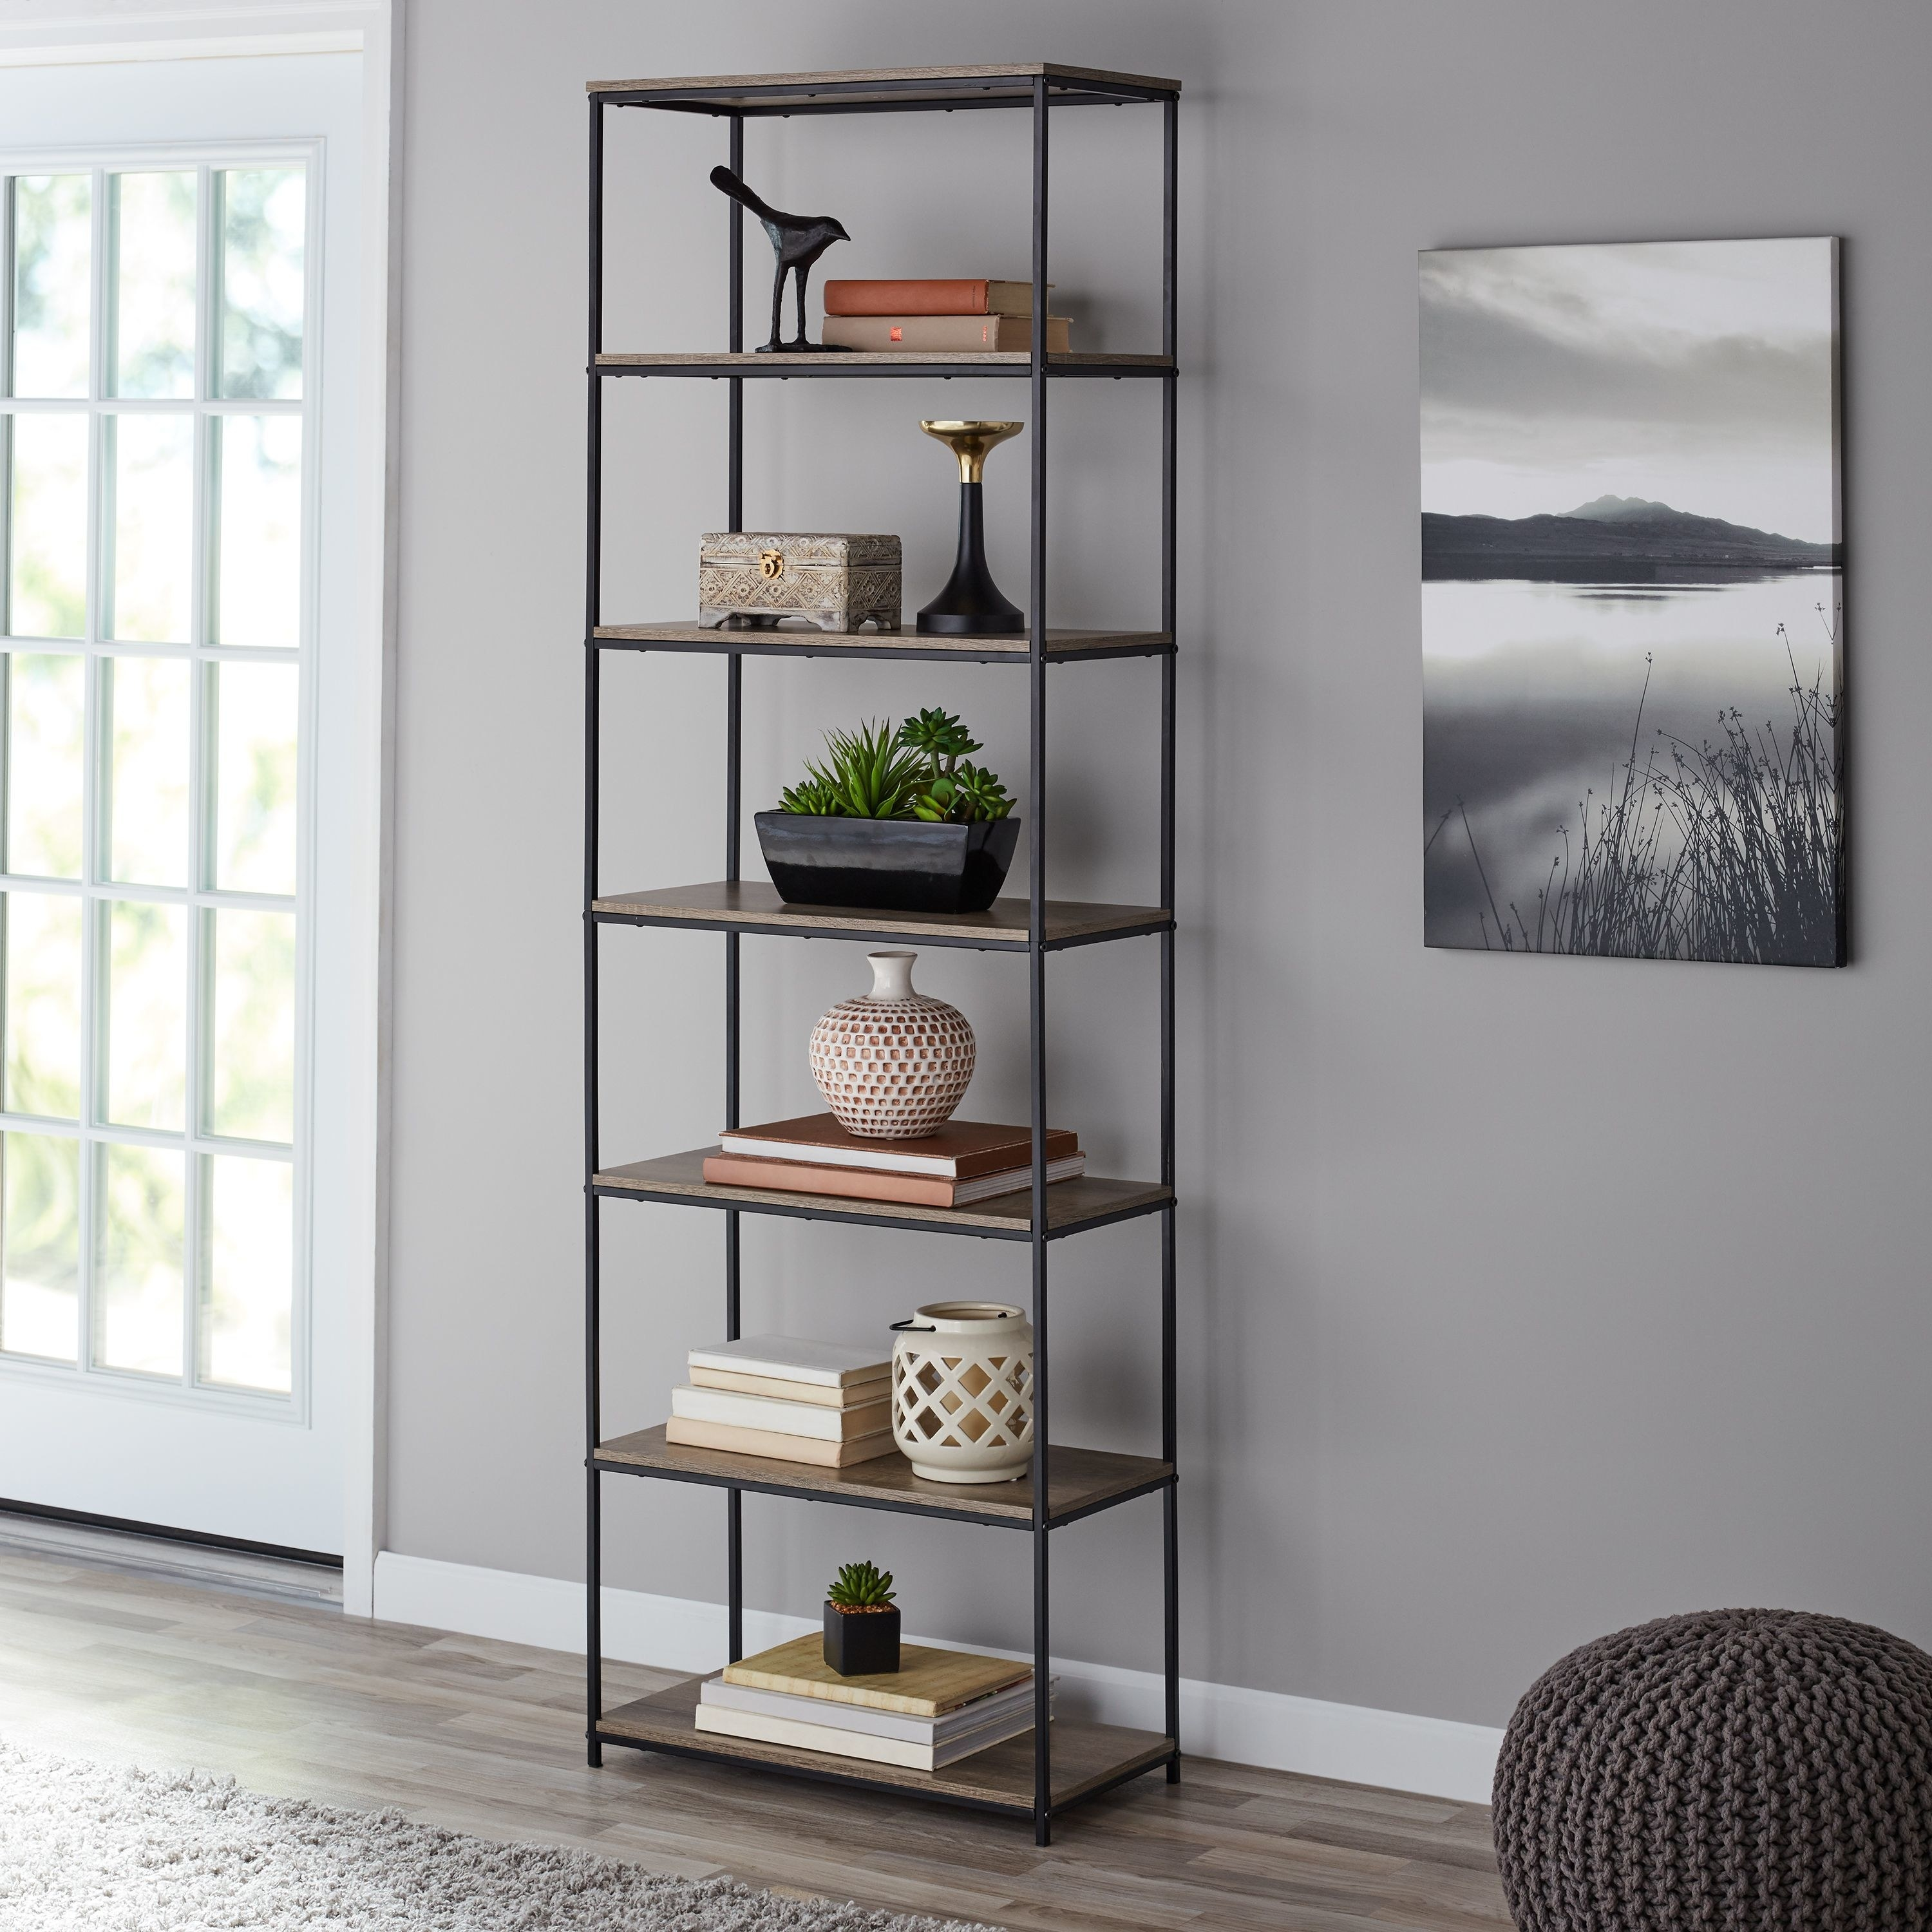 the open bookcase with six shelves